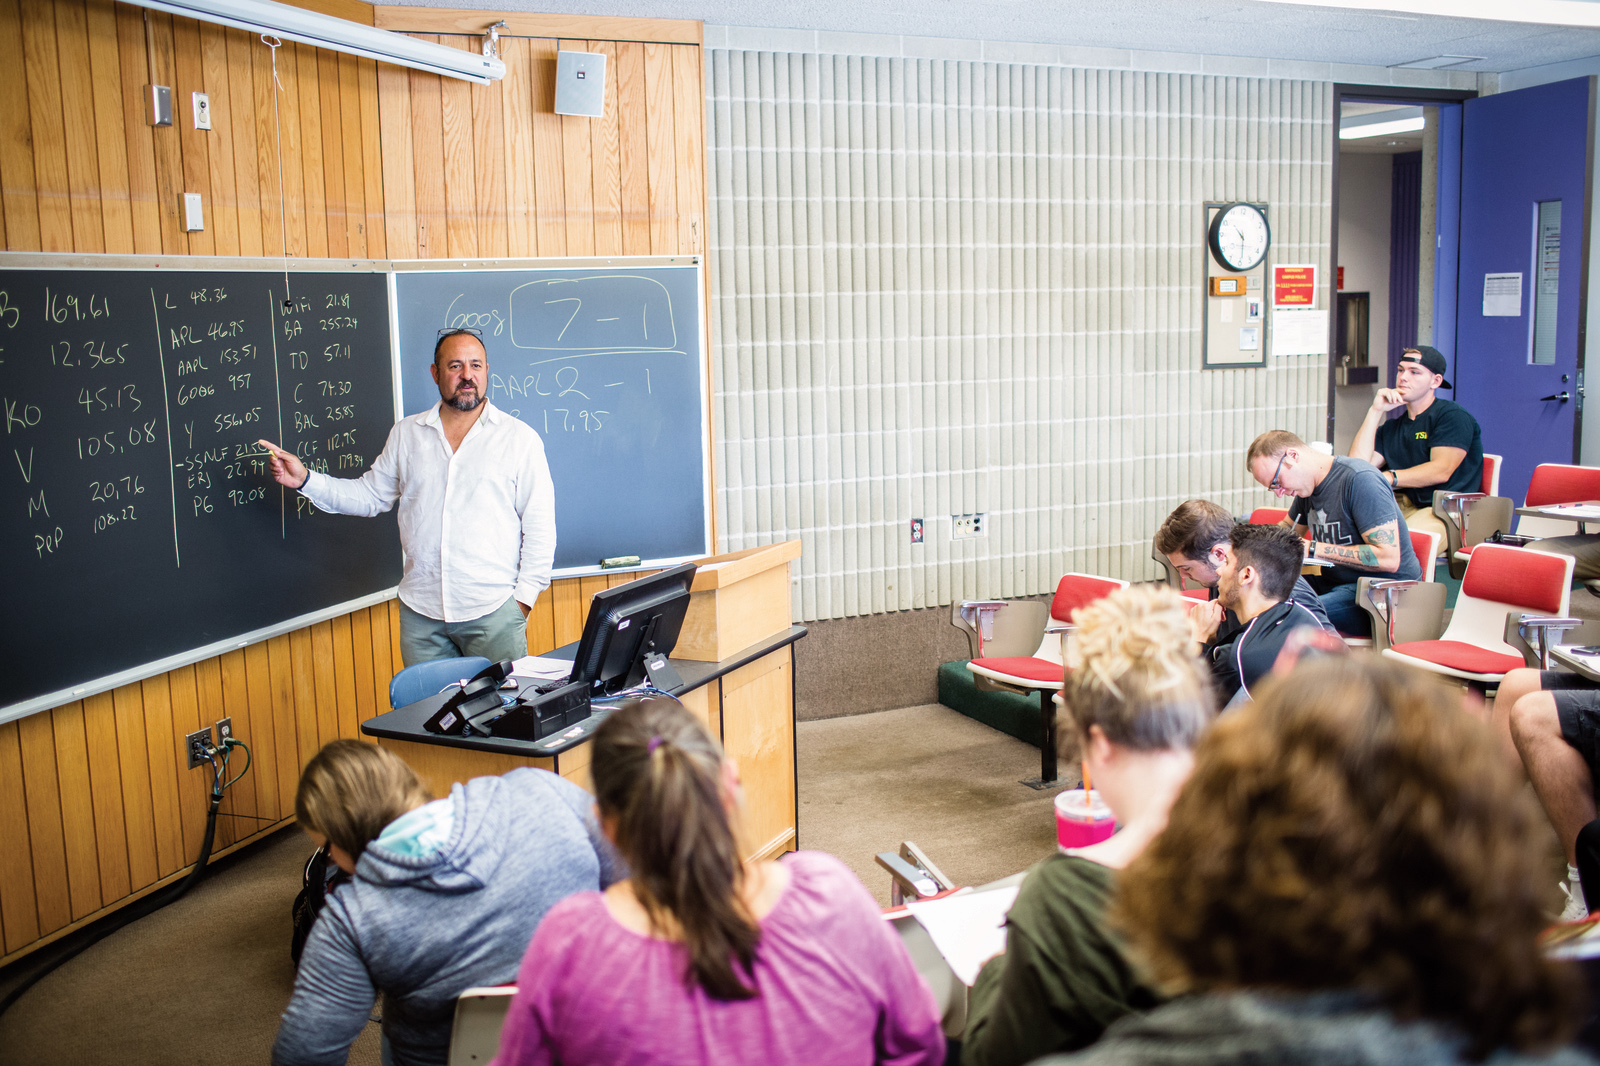 A professor stands in front of a classroom of students as he points at a whiteboard covered with financial figures.